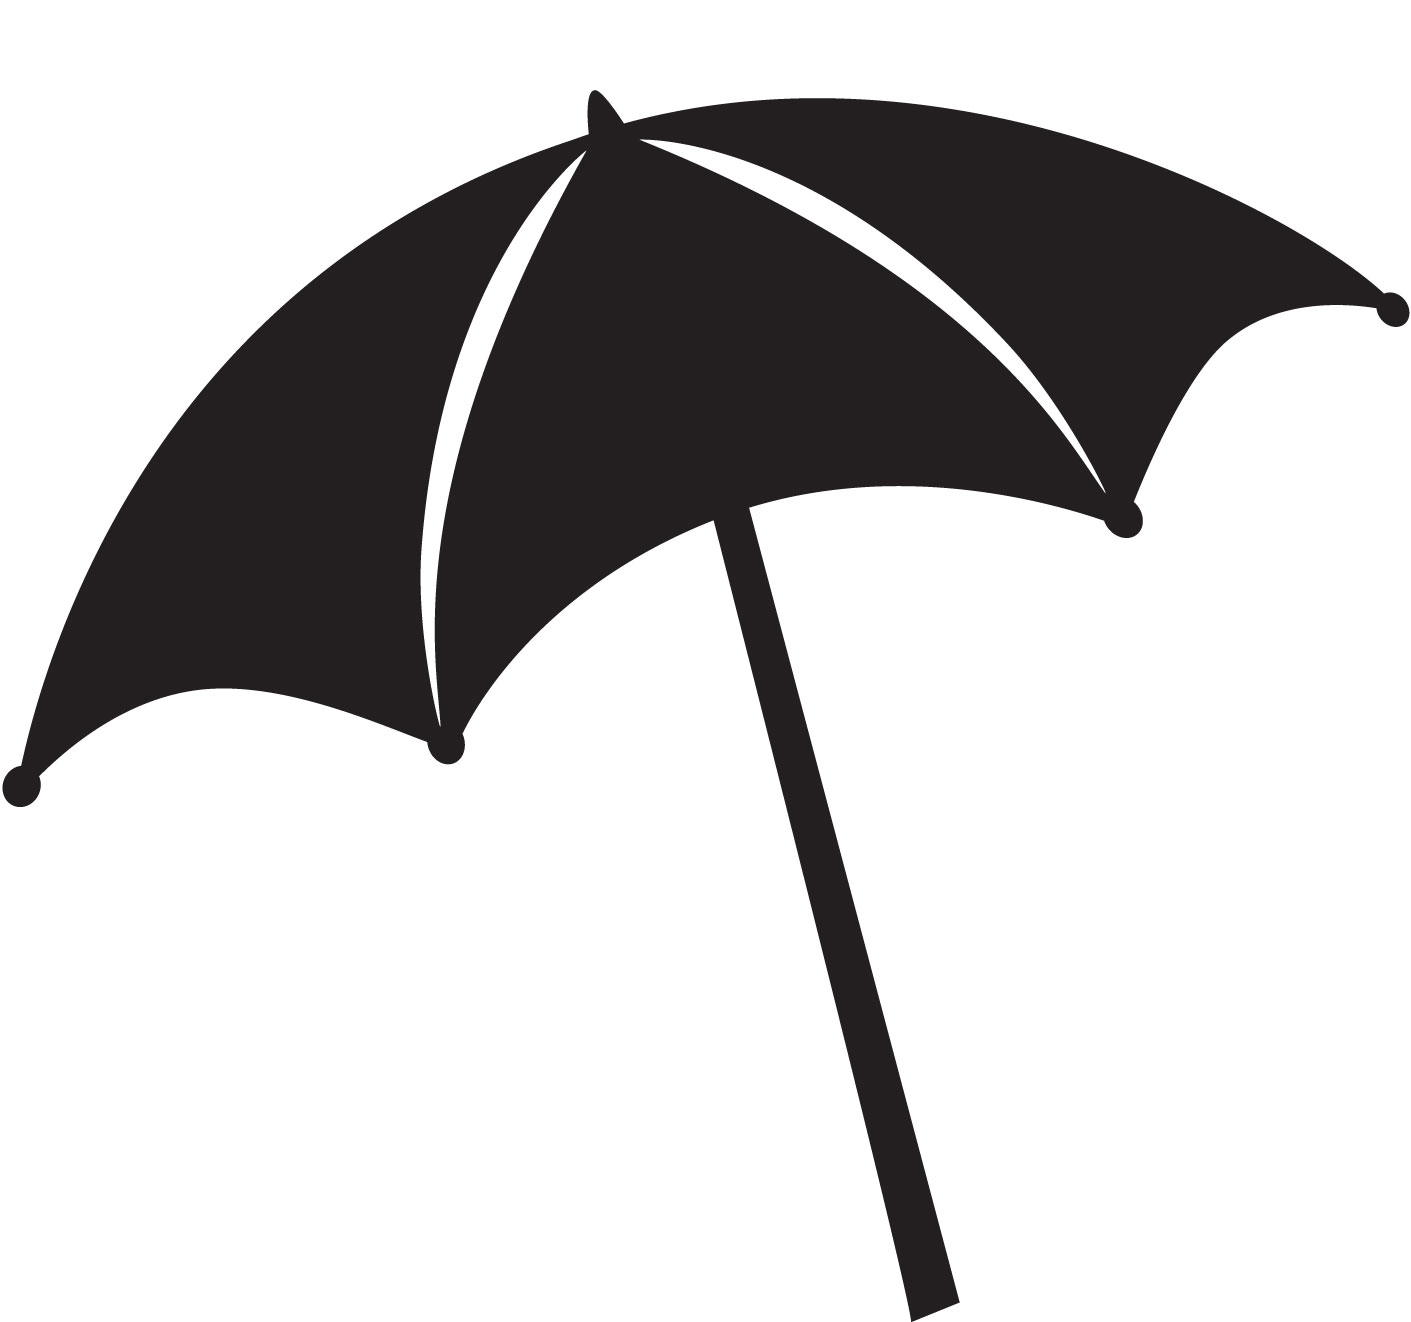 1411x1322 Umbrella Outline Clipart